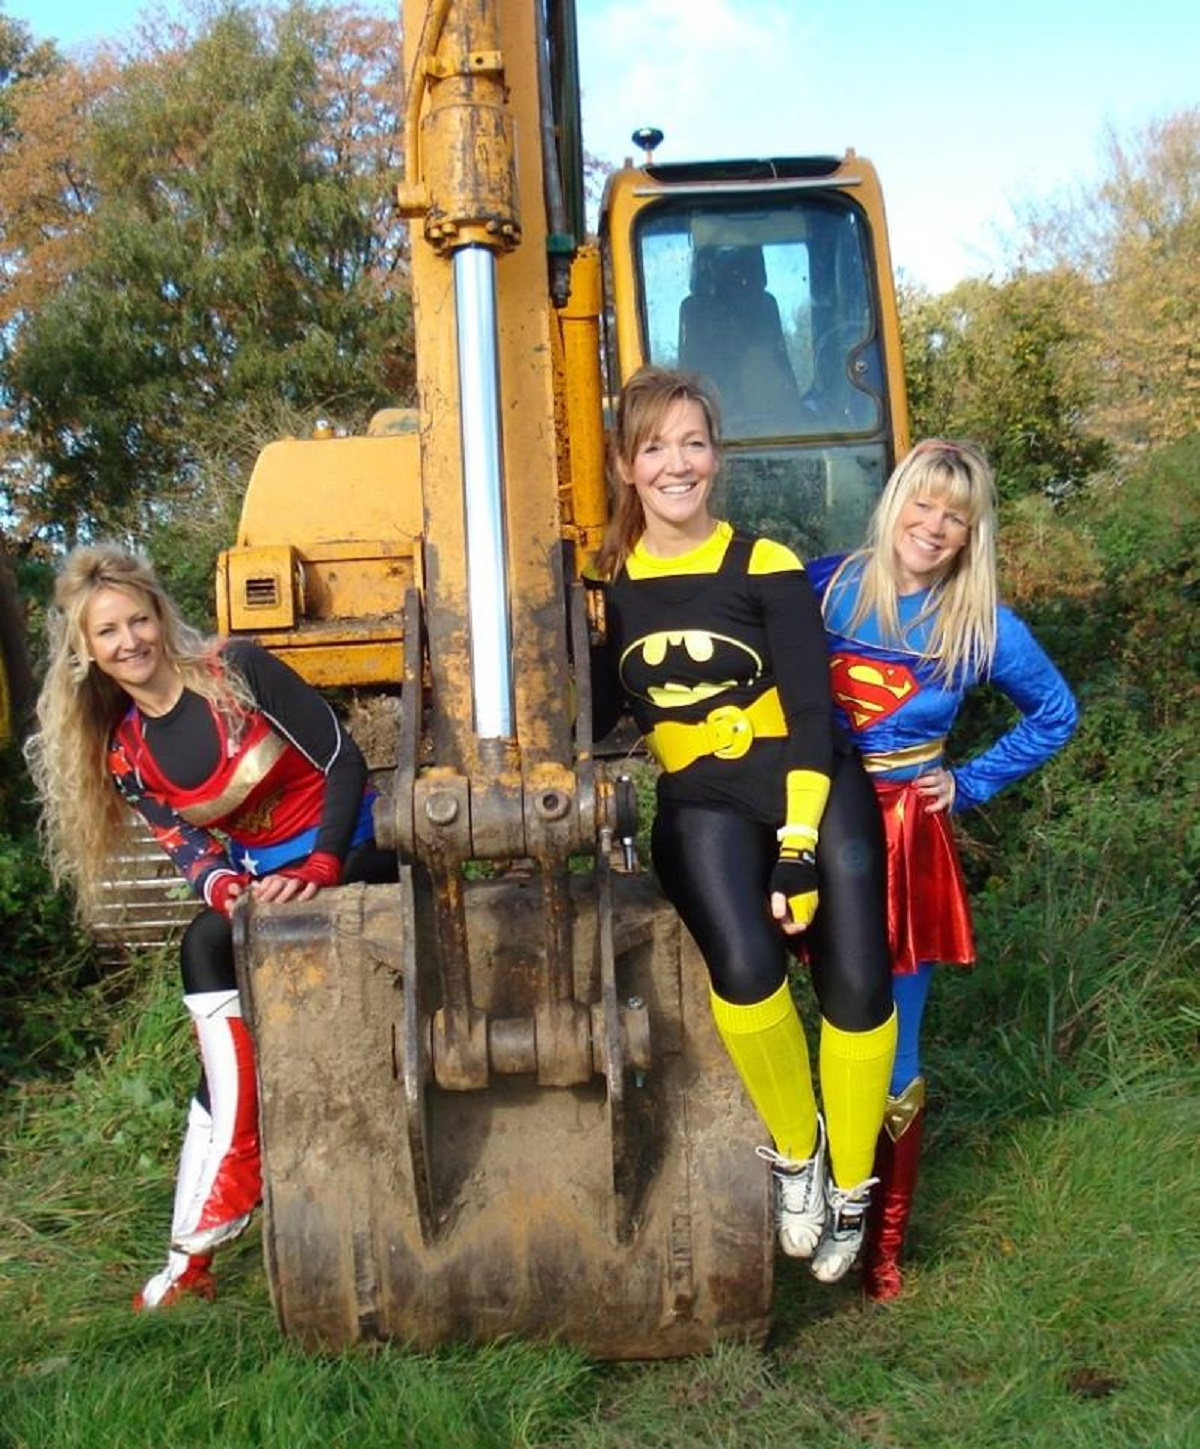 Superhero mums run for charities